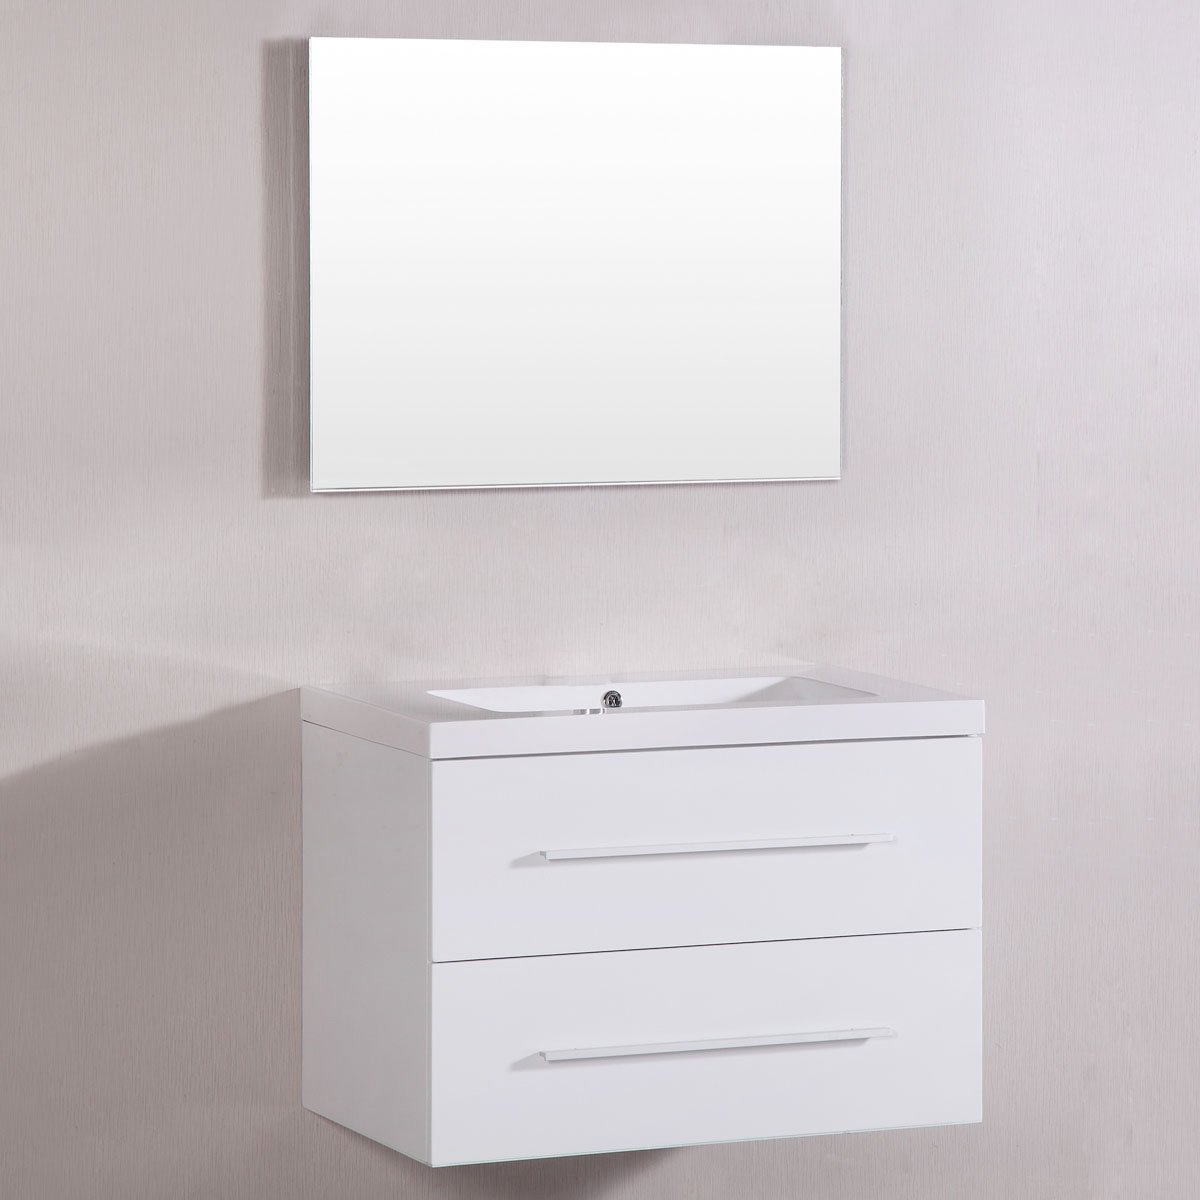 Decoraport 40 In. MDF Bathroom Vanity Set with Single Sink and Mirror (A-TM8120S)